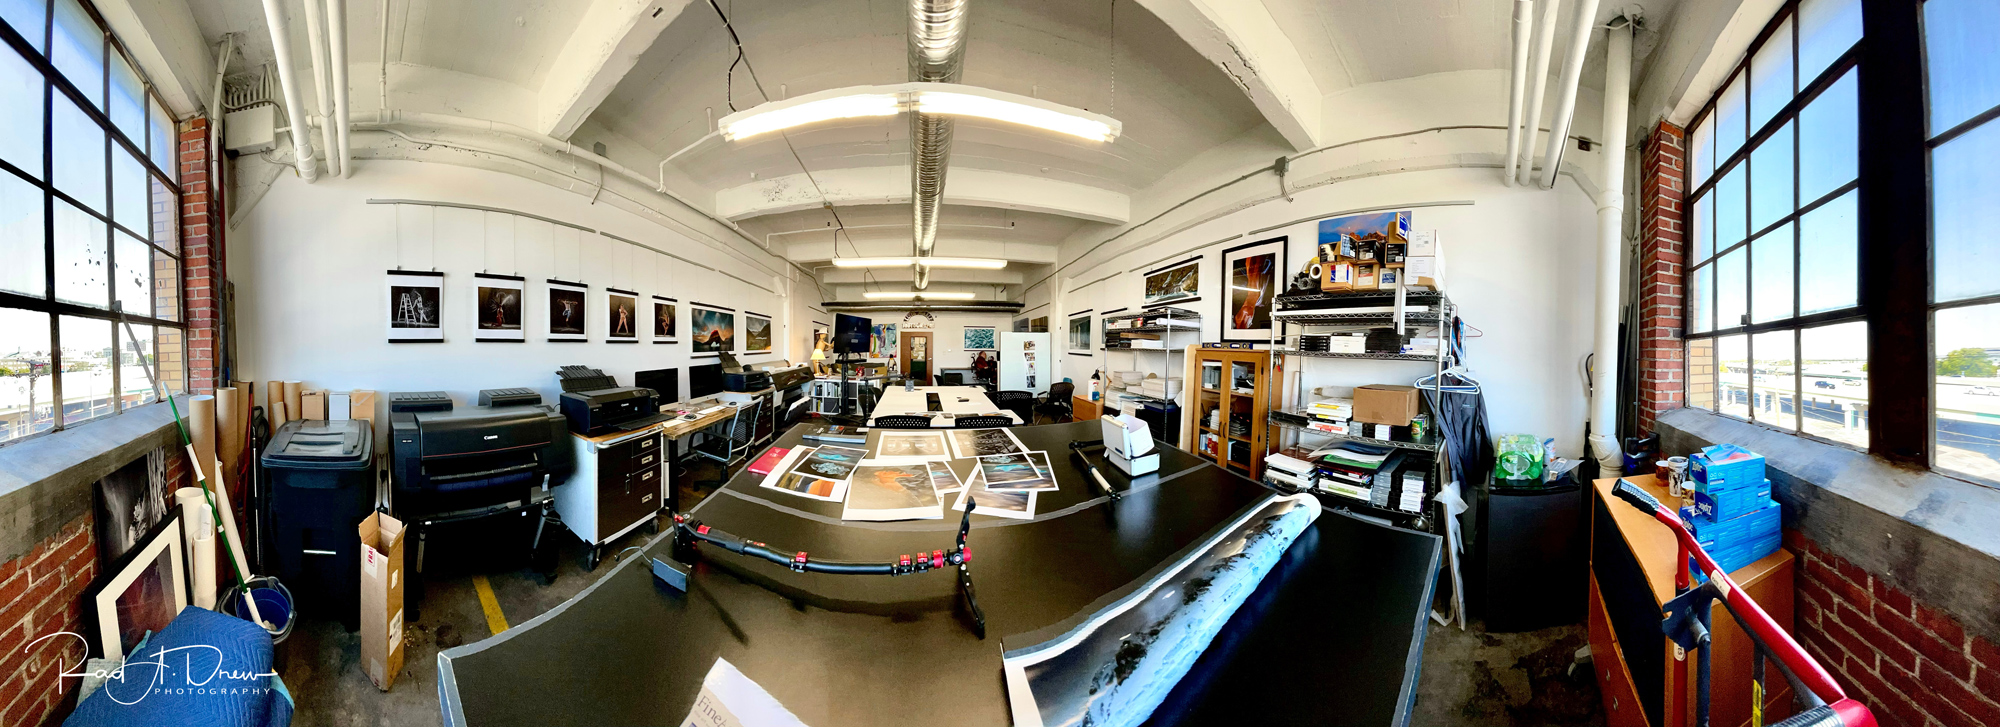 My friend and PXL Auntor Rad Drew shot this pano when he visited last week